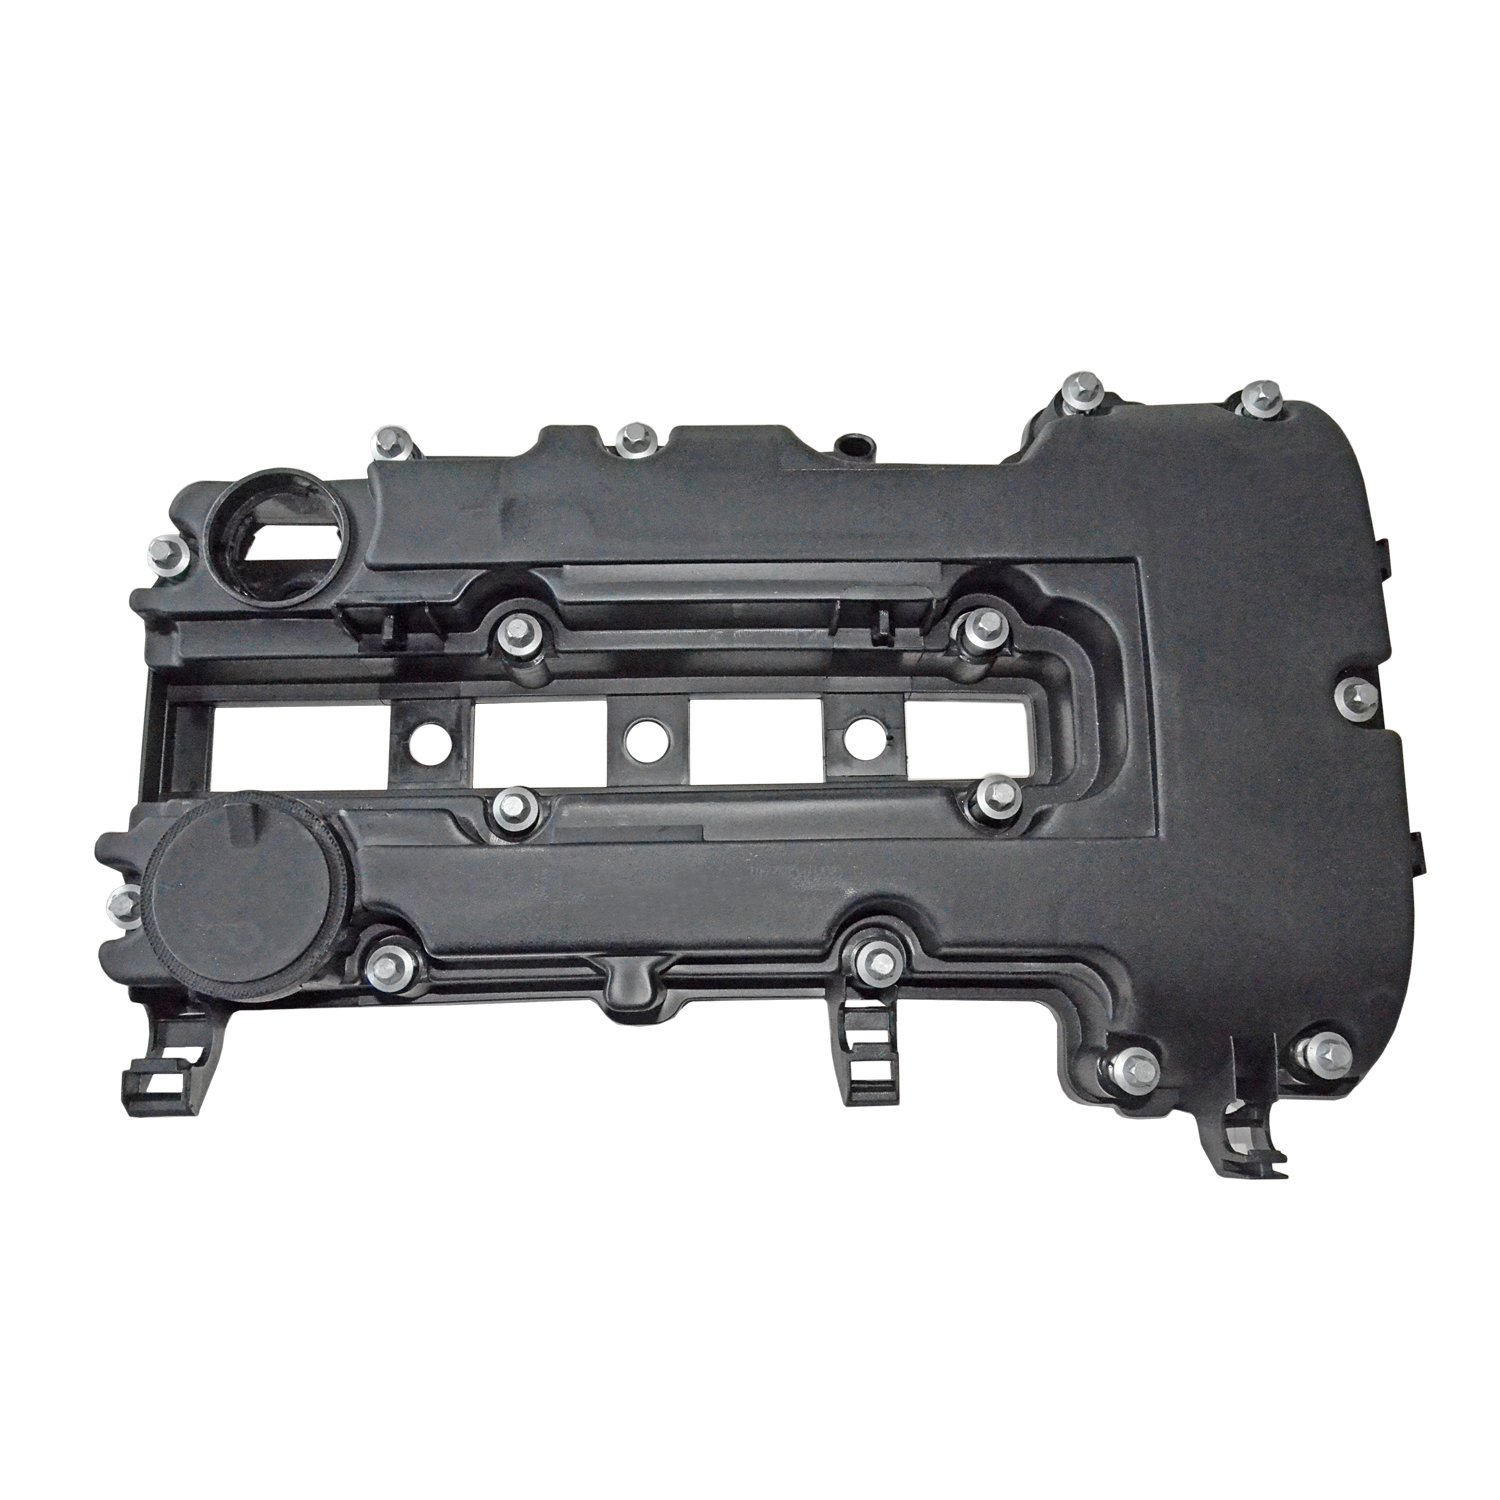 Engine Rocker Cover w/Bolts & Seal For Chevy Chevrolet Cruze Sonic Cadillac ELR Buick Encore 1.4L 55573746 25198498 25198874